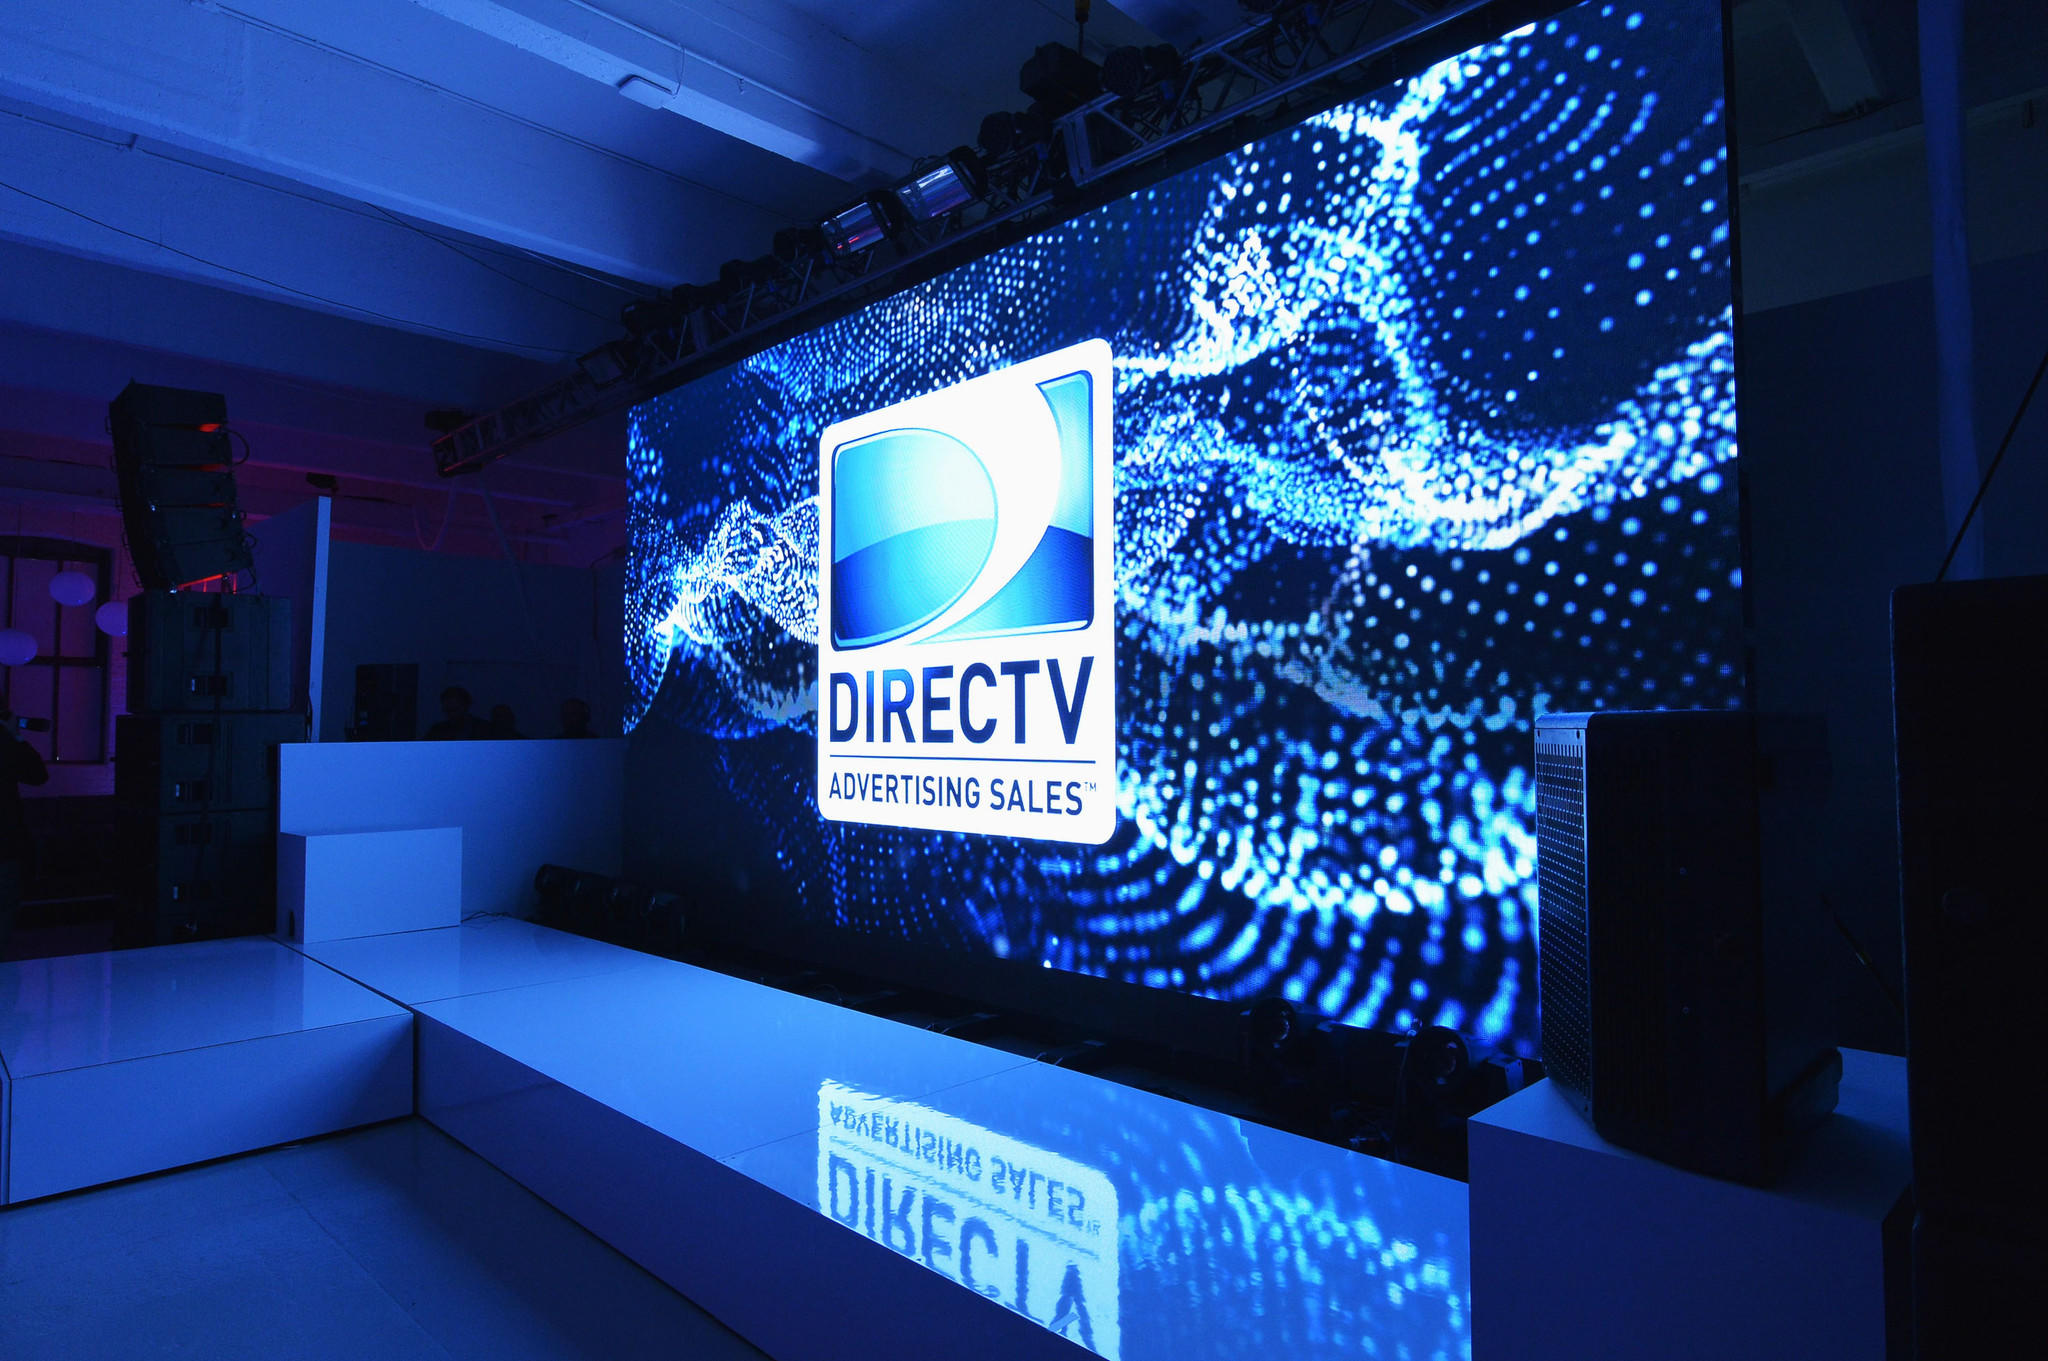 A general view of atmosphere at DIRECTV's 2013 National Ad Sales Upfront.